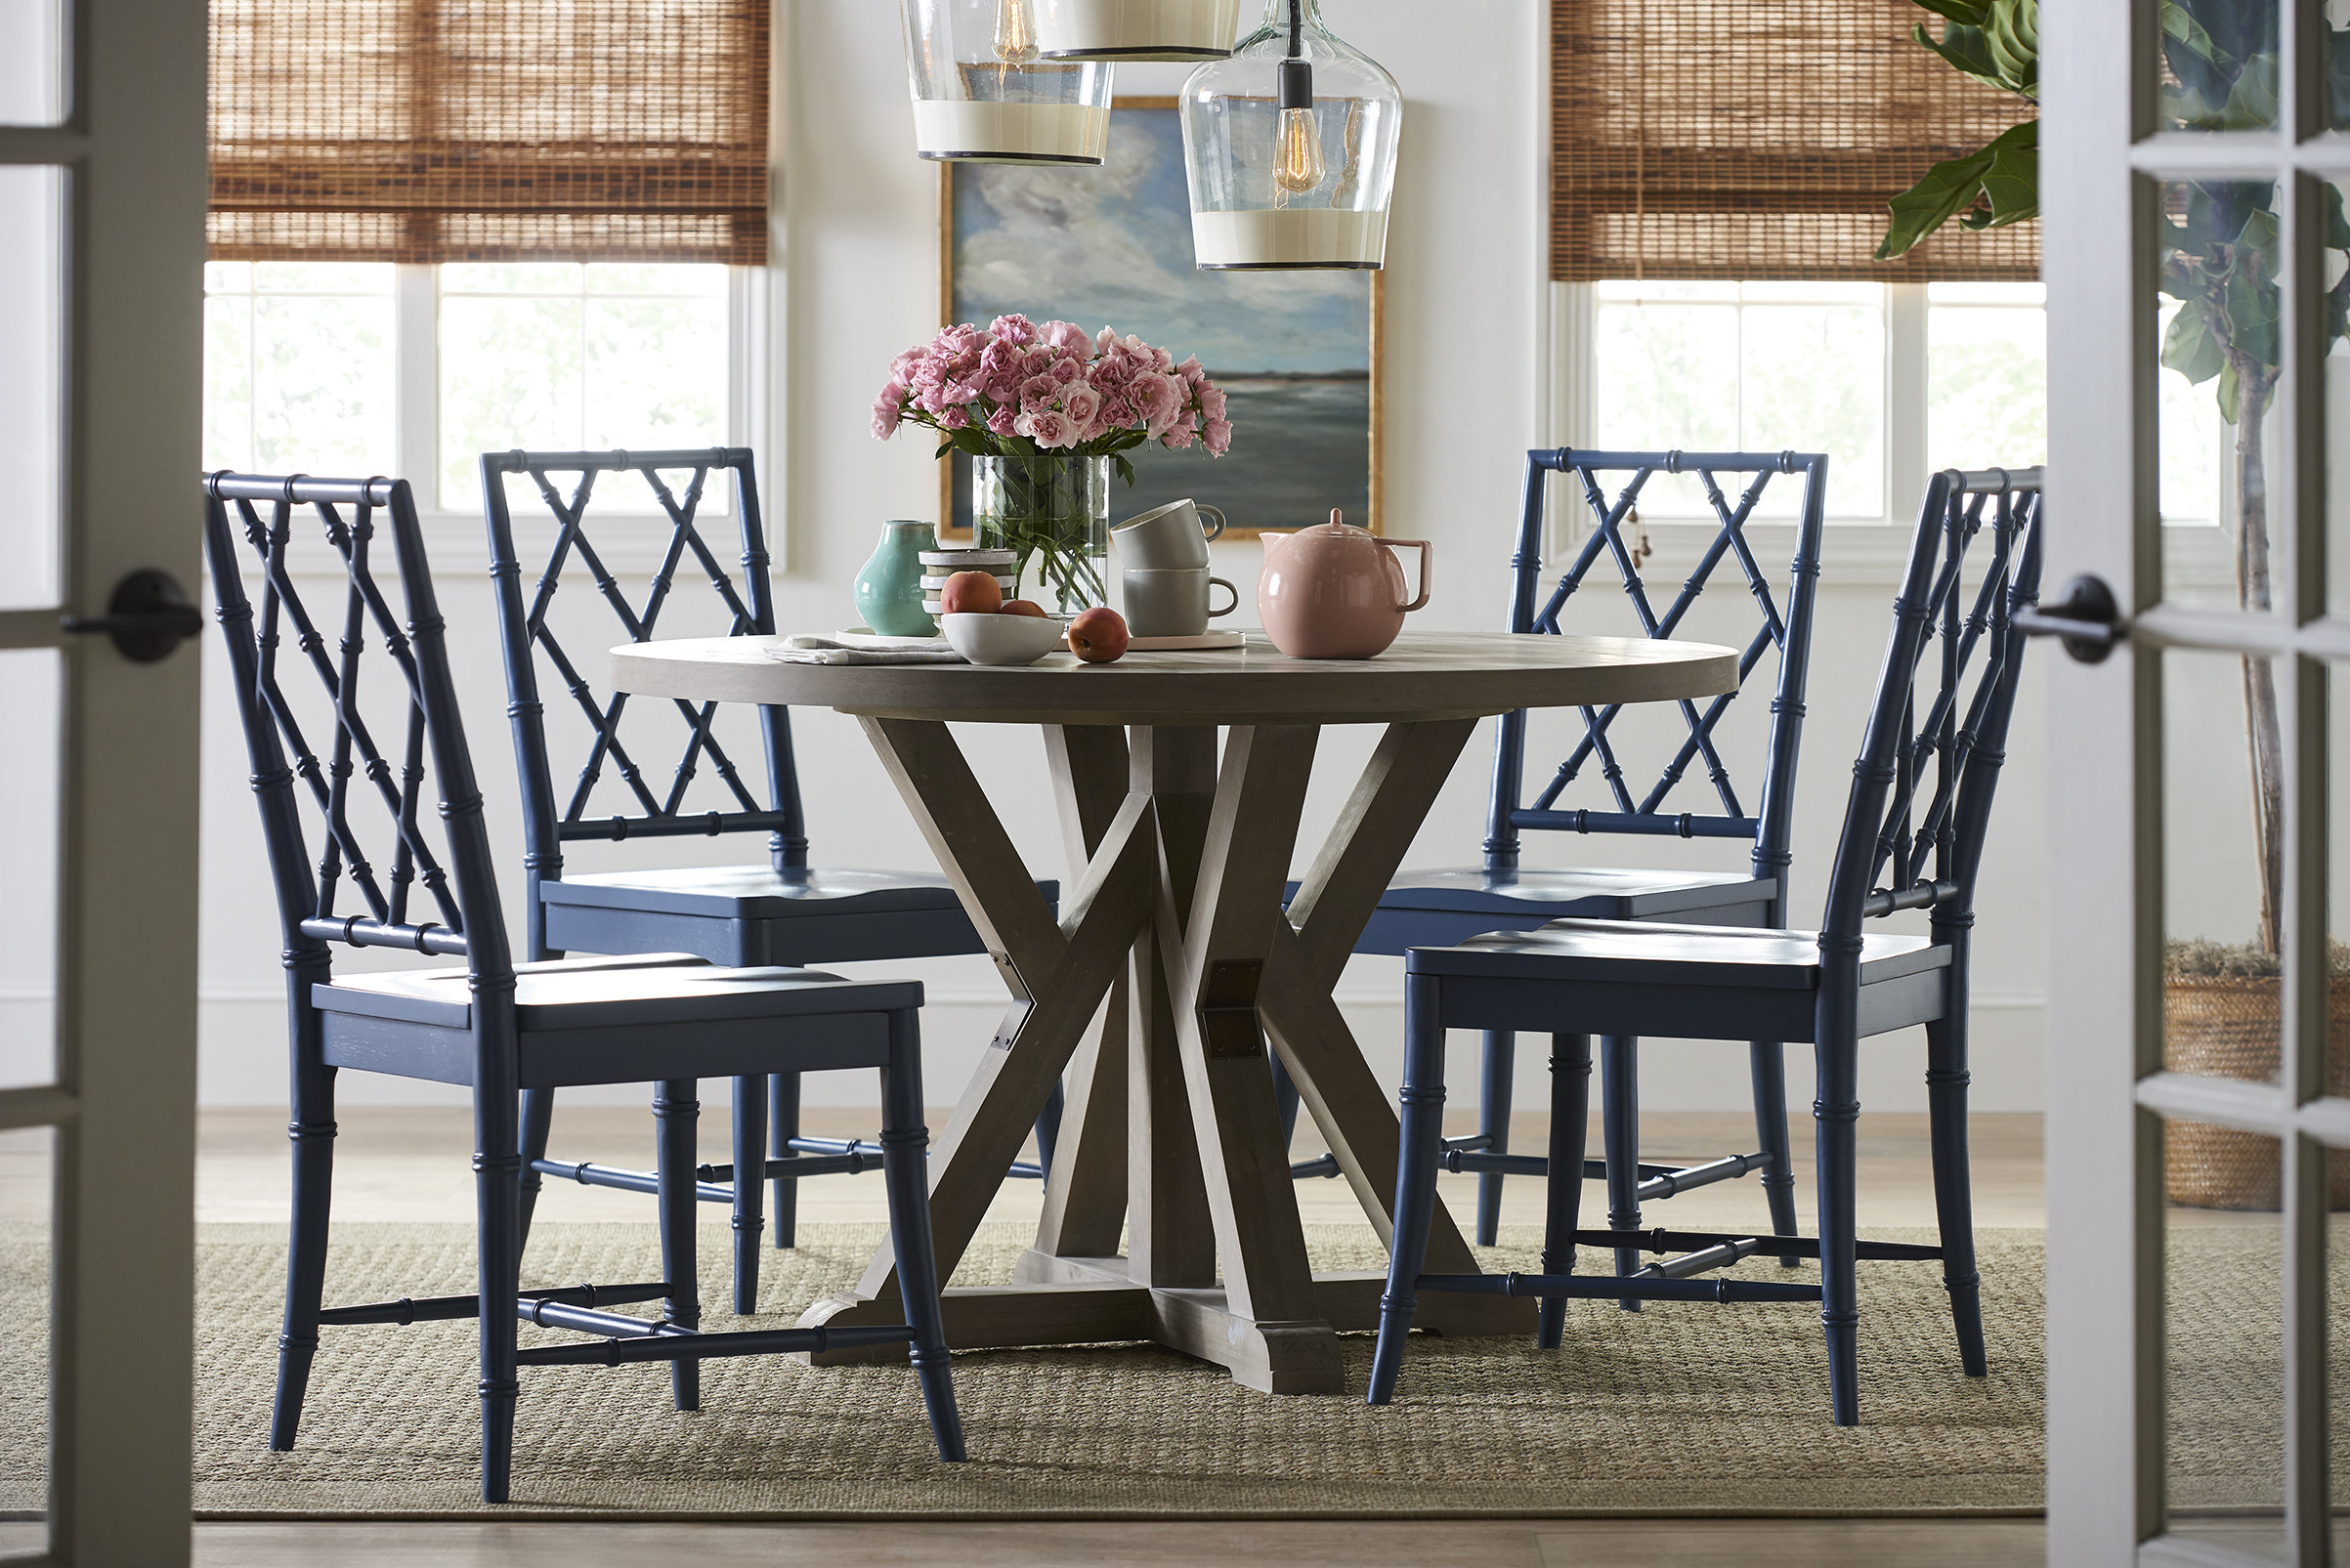 Saintcroix 3 Piece Dining Sets With Latest Younghouselove 5 Piece Dining Set & Reviews (View 10 of 25)